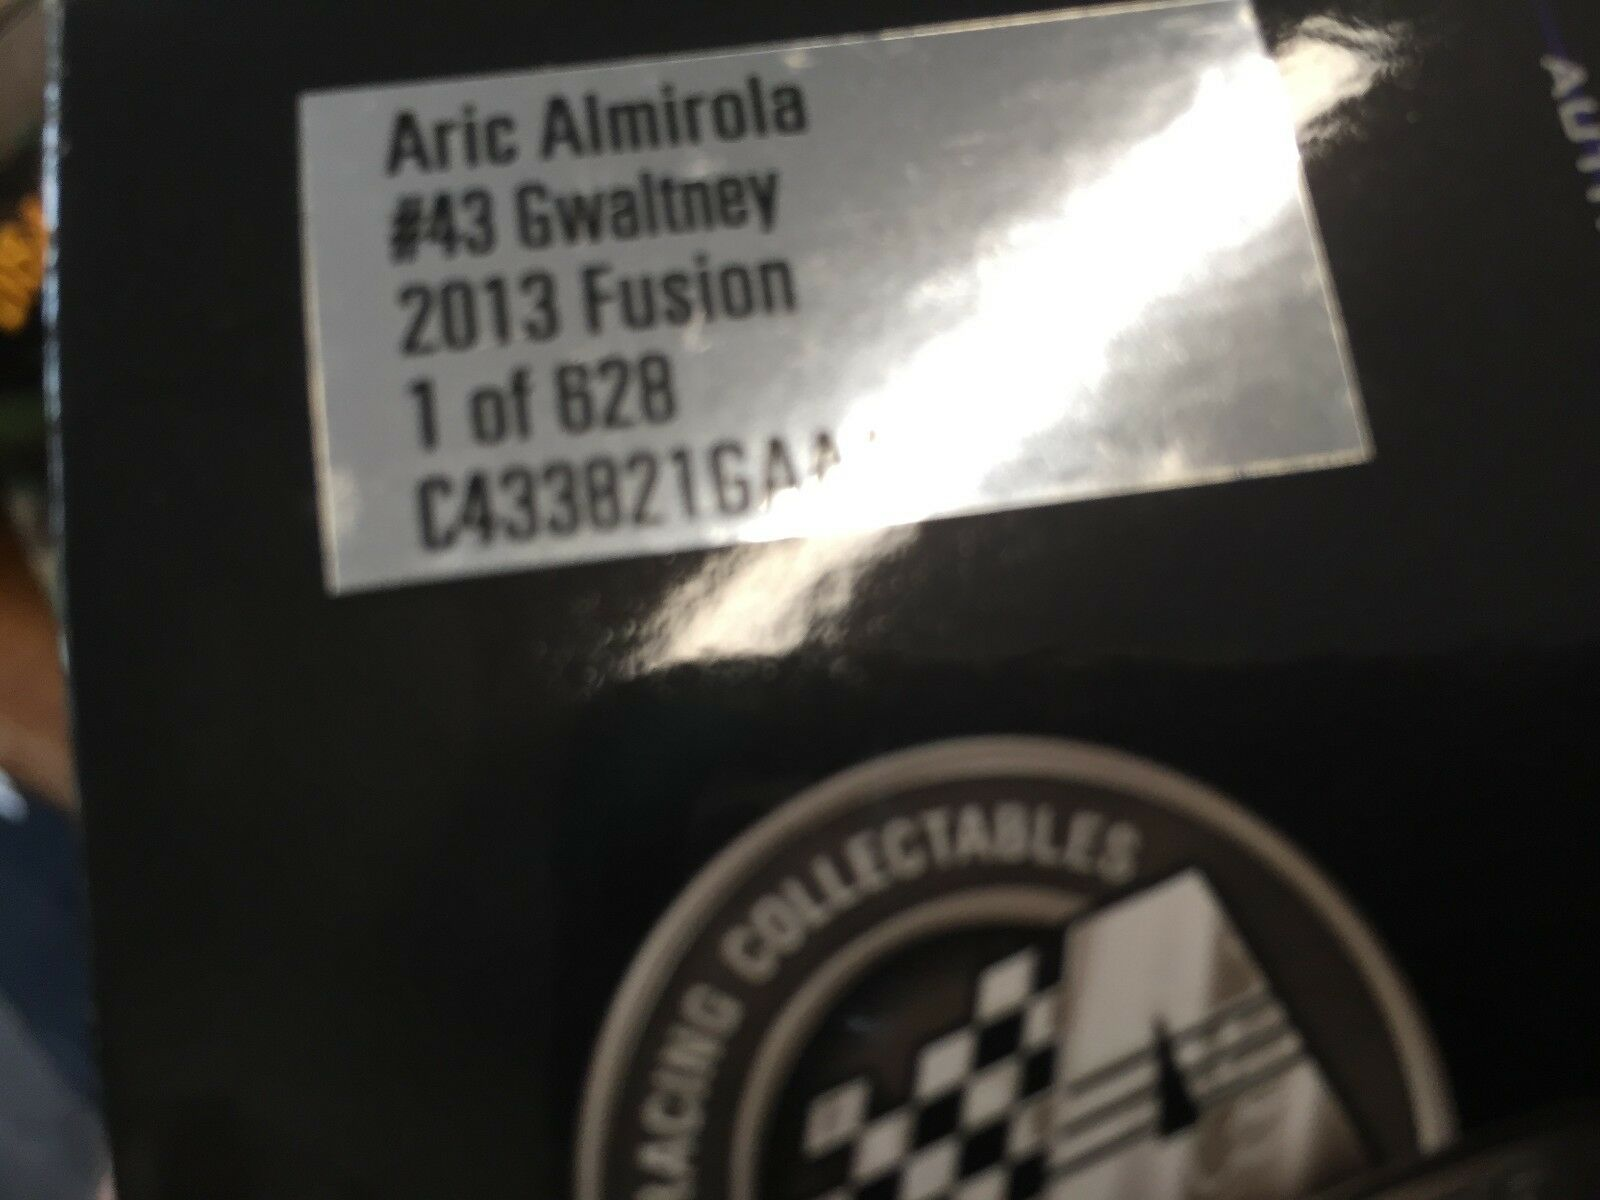 1 24 ACTION Aric Almirola Gwaltney 1 1 1 of 628 Ford Fusion b648ff